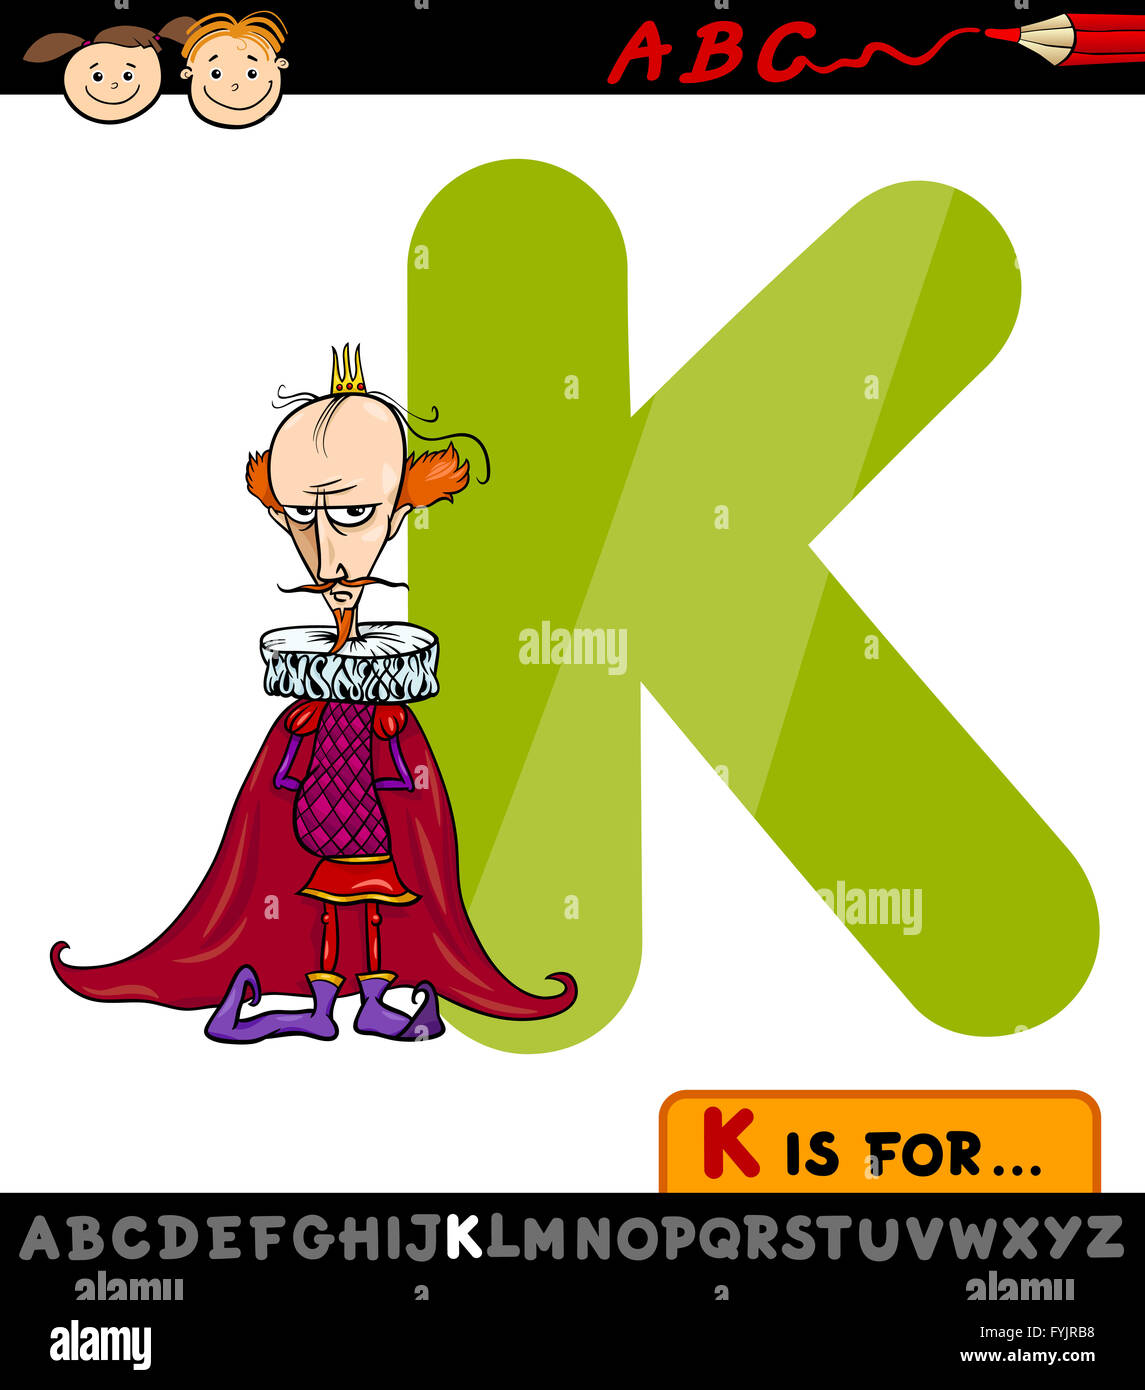 8 Letter Cartoon Characters : Cartoon characters beginning with the letter k